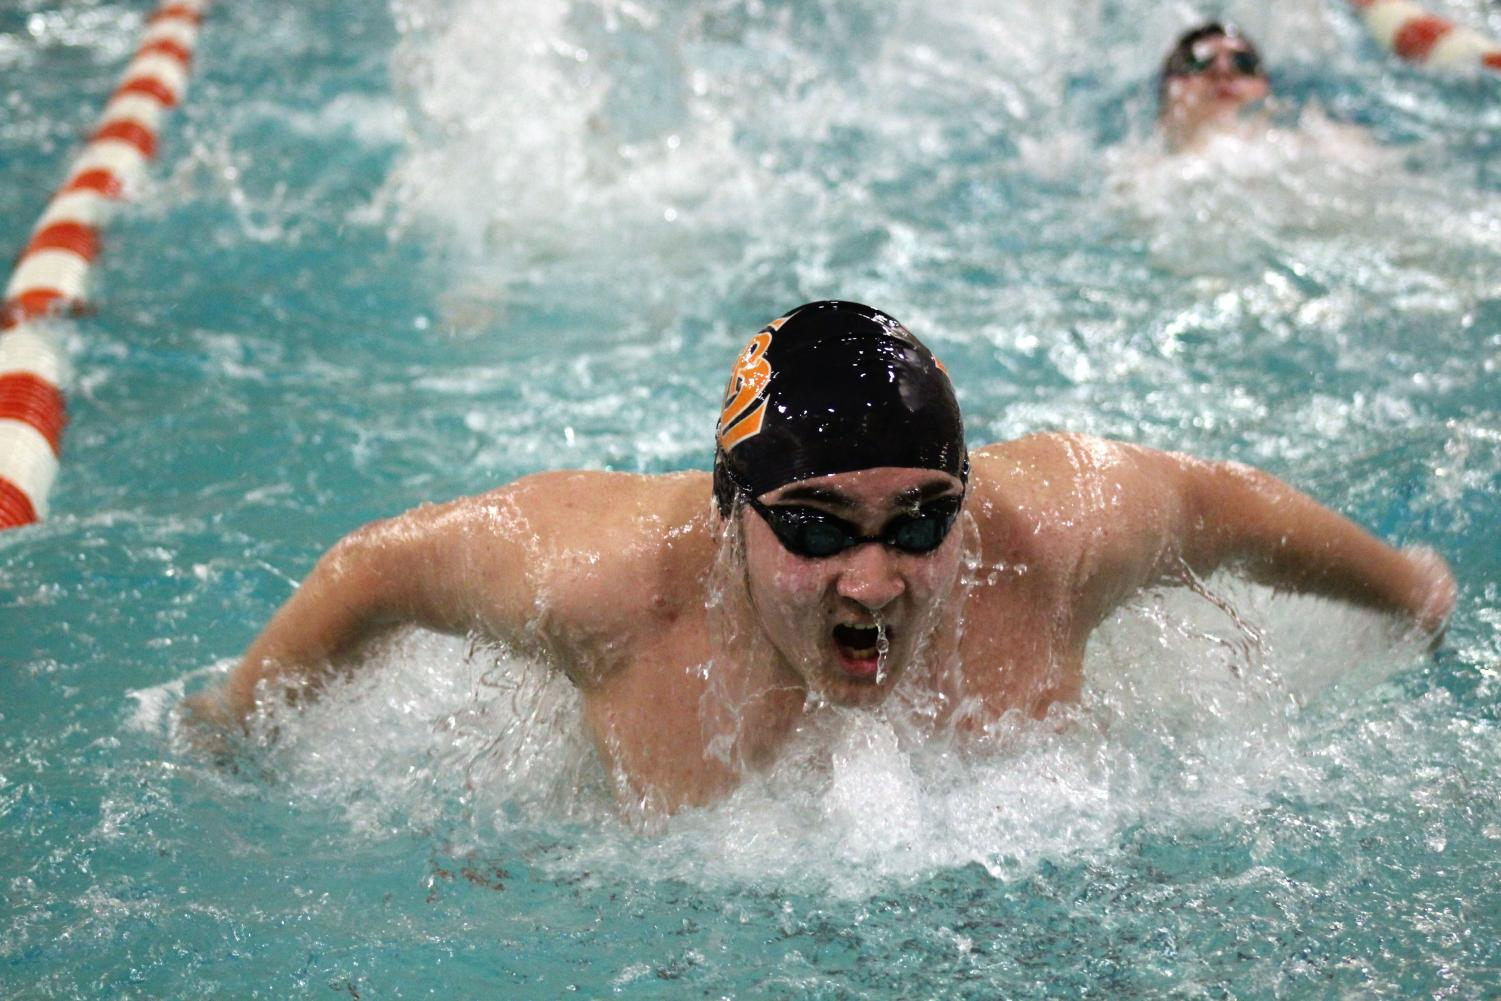 Freshman Hiro Mckee practices butterfly stroke following the Jefferson meet Feb. 5. He is preparing for the upcoming meet Feb. 9 at Oak Grove Middle School.